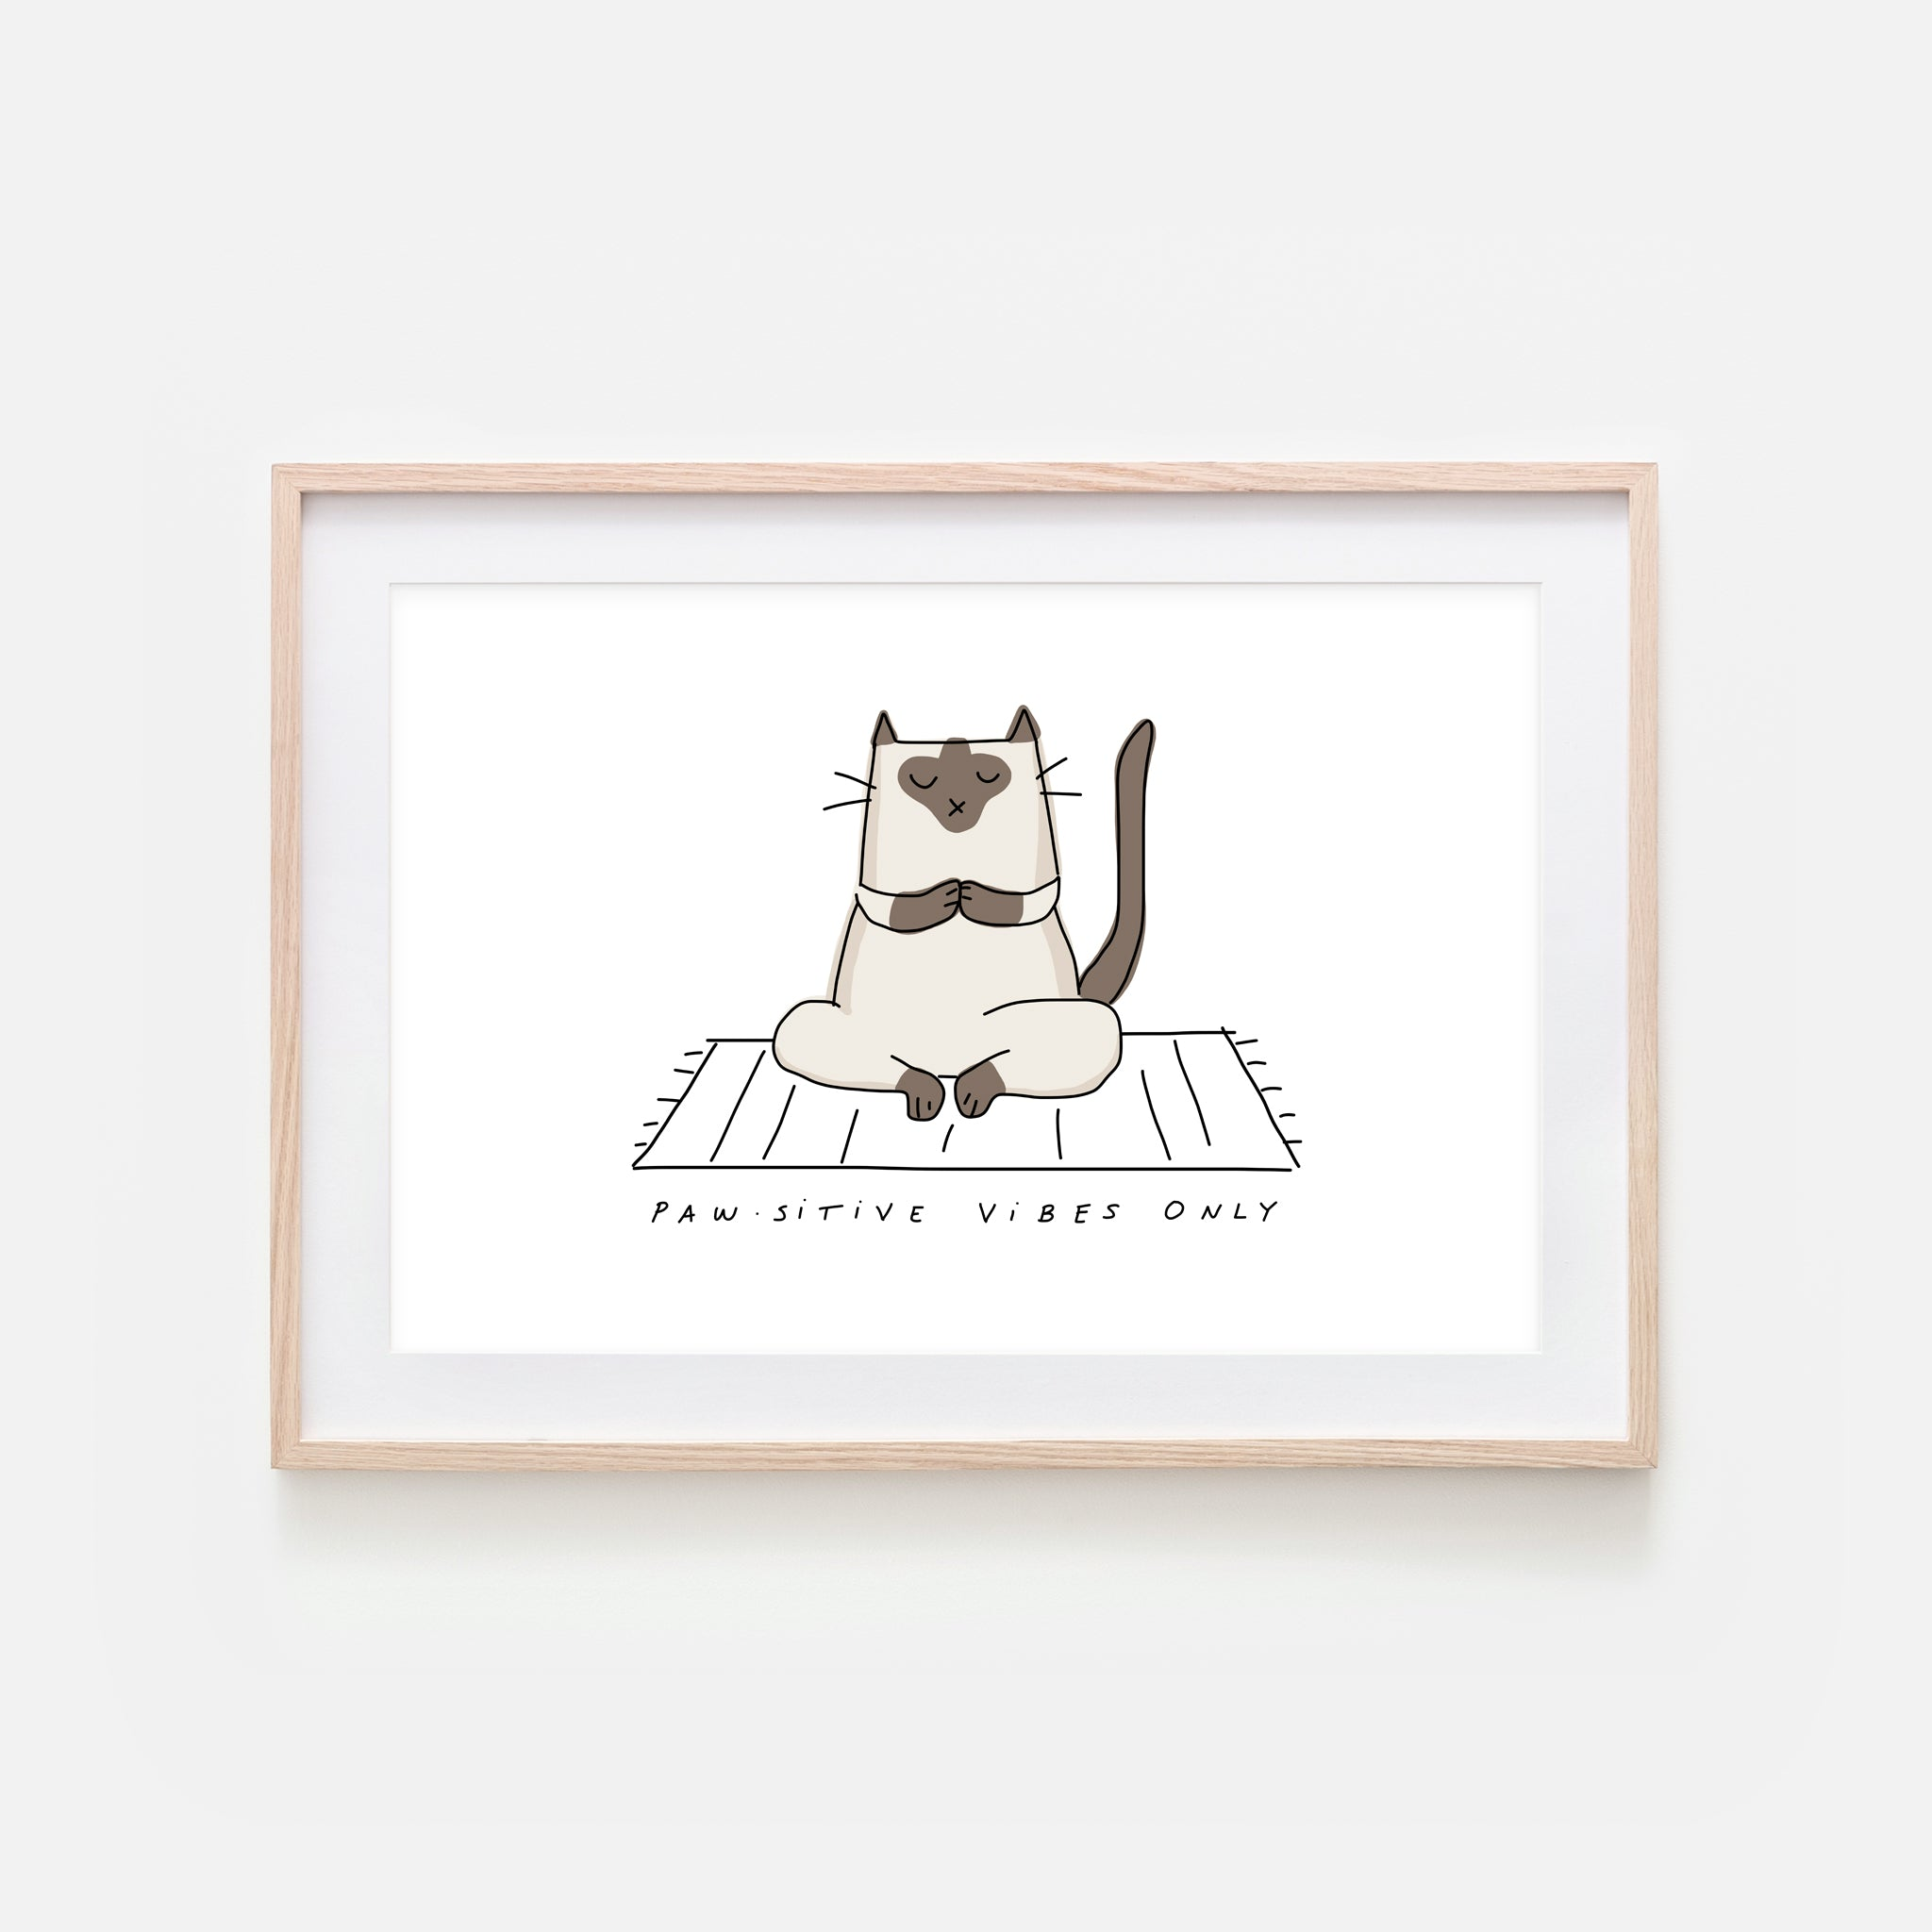 Pawsitive Vibes Only - Yoga Wall Art - Siamese Cat Line Drawing - Fitness Exercise Room Decor - Print, Poster or Printable Download